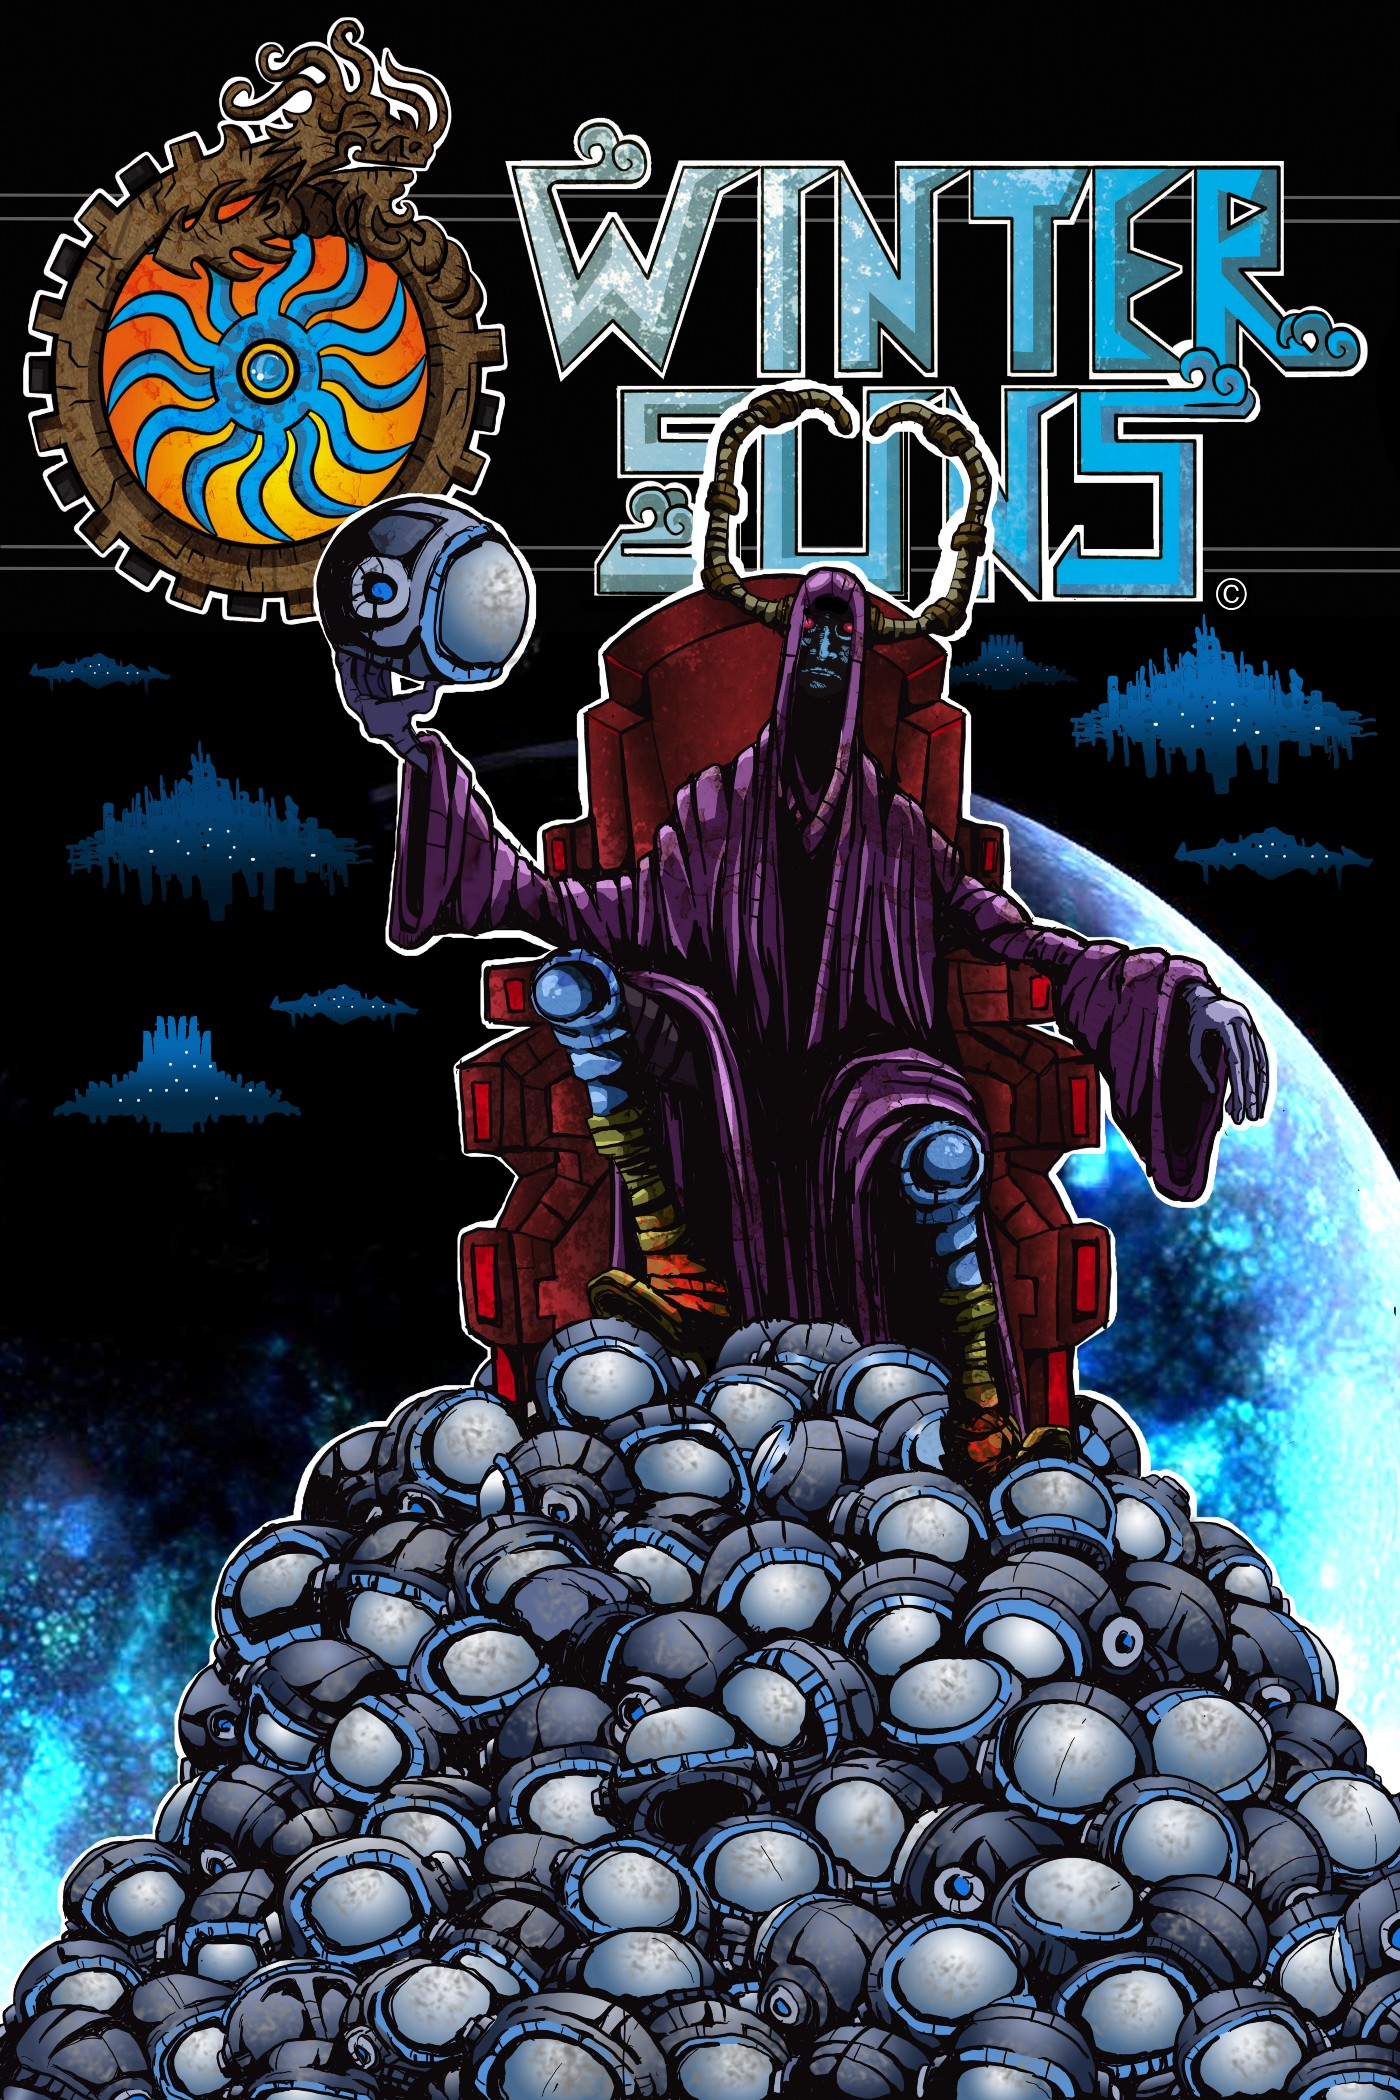 A mysterious robed being sits in a throne atop a mountain of space helmets.